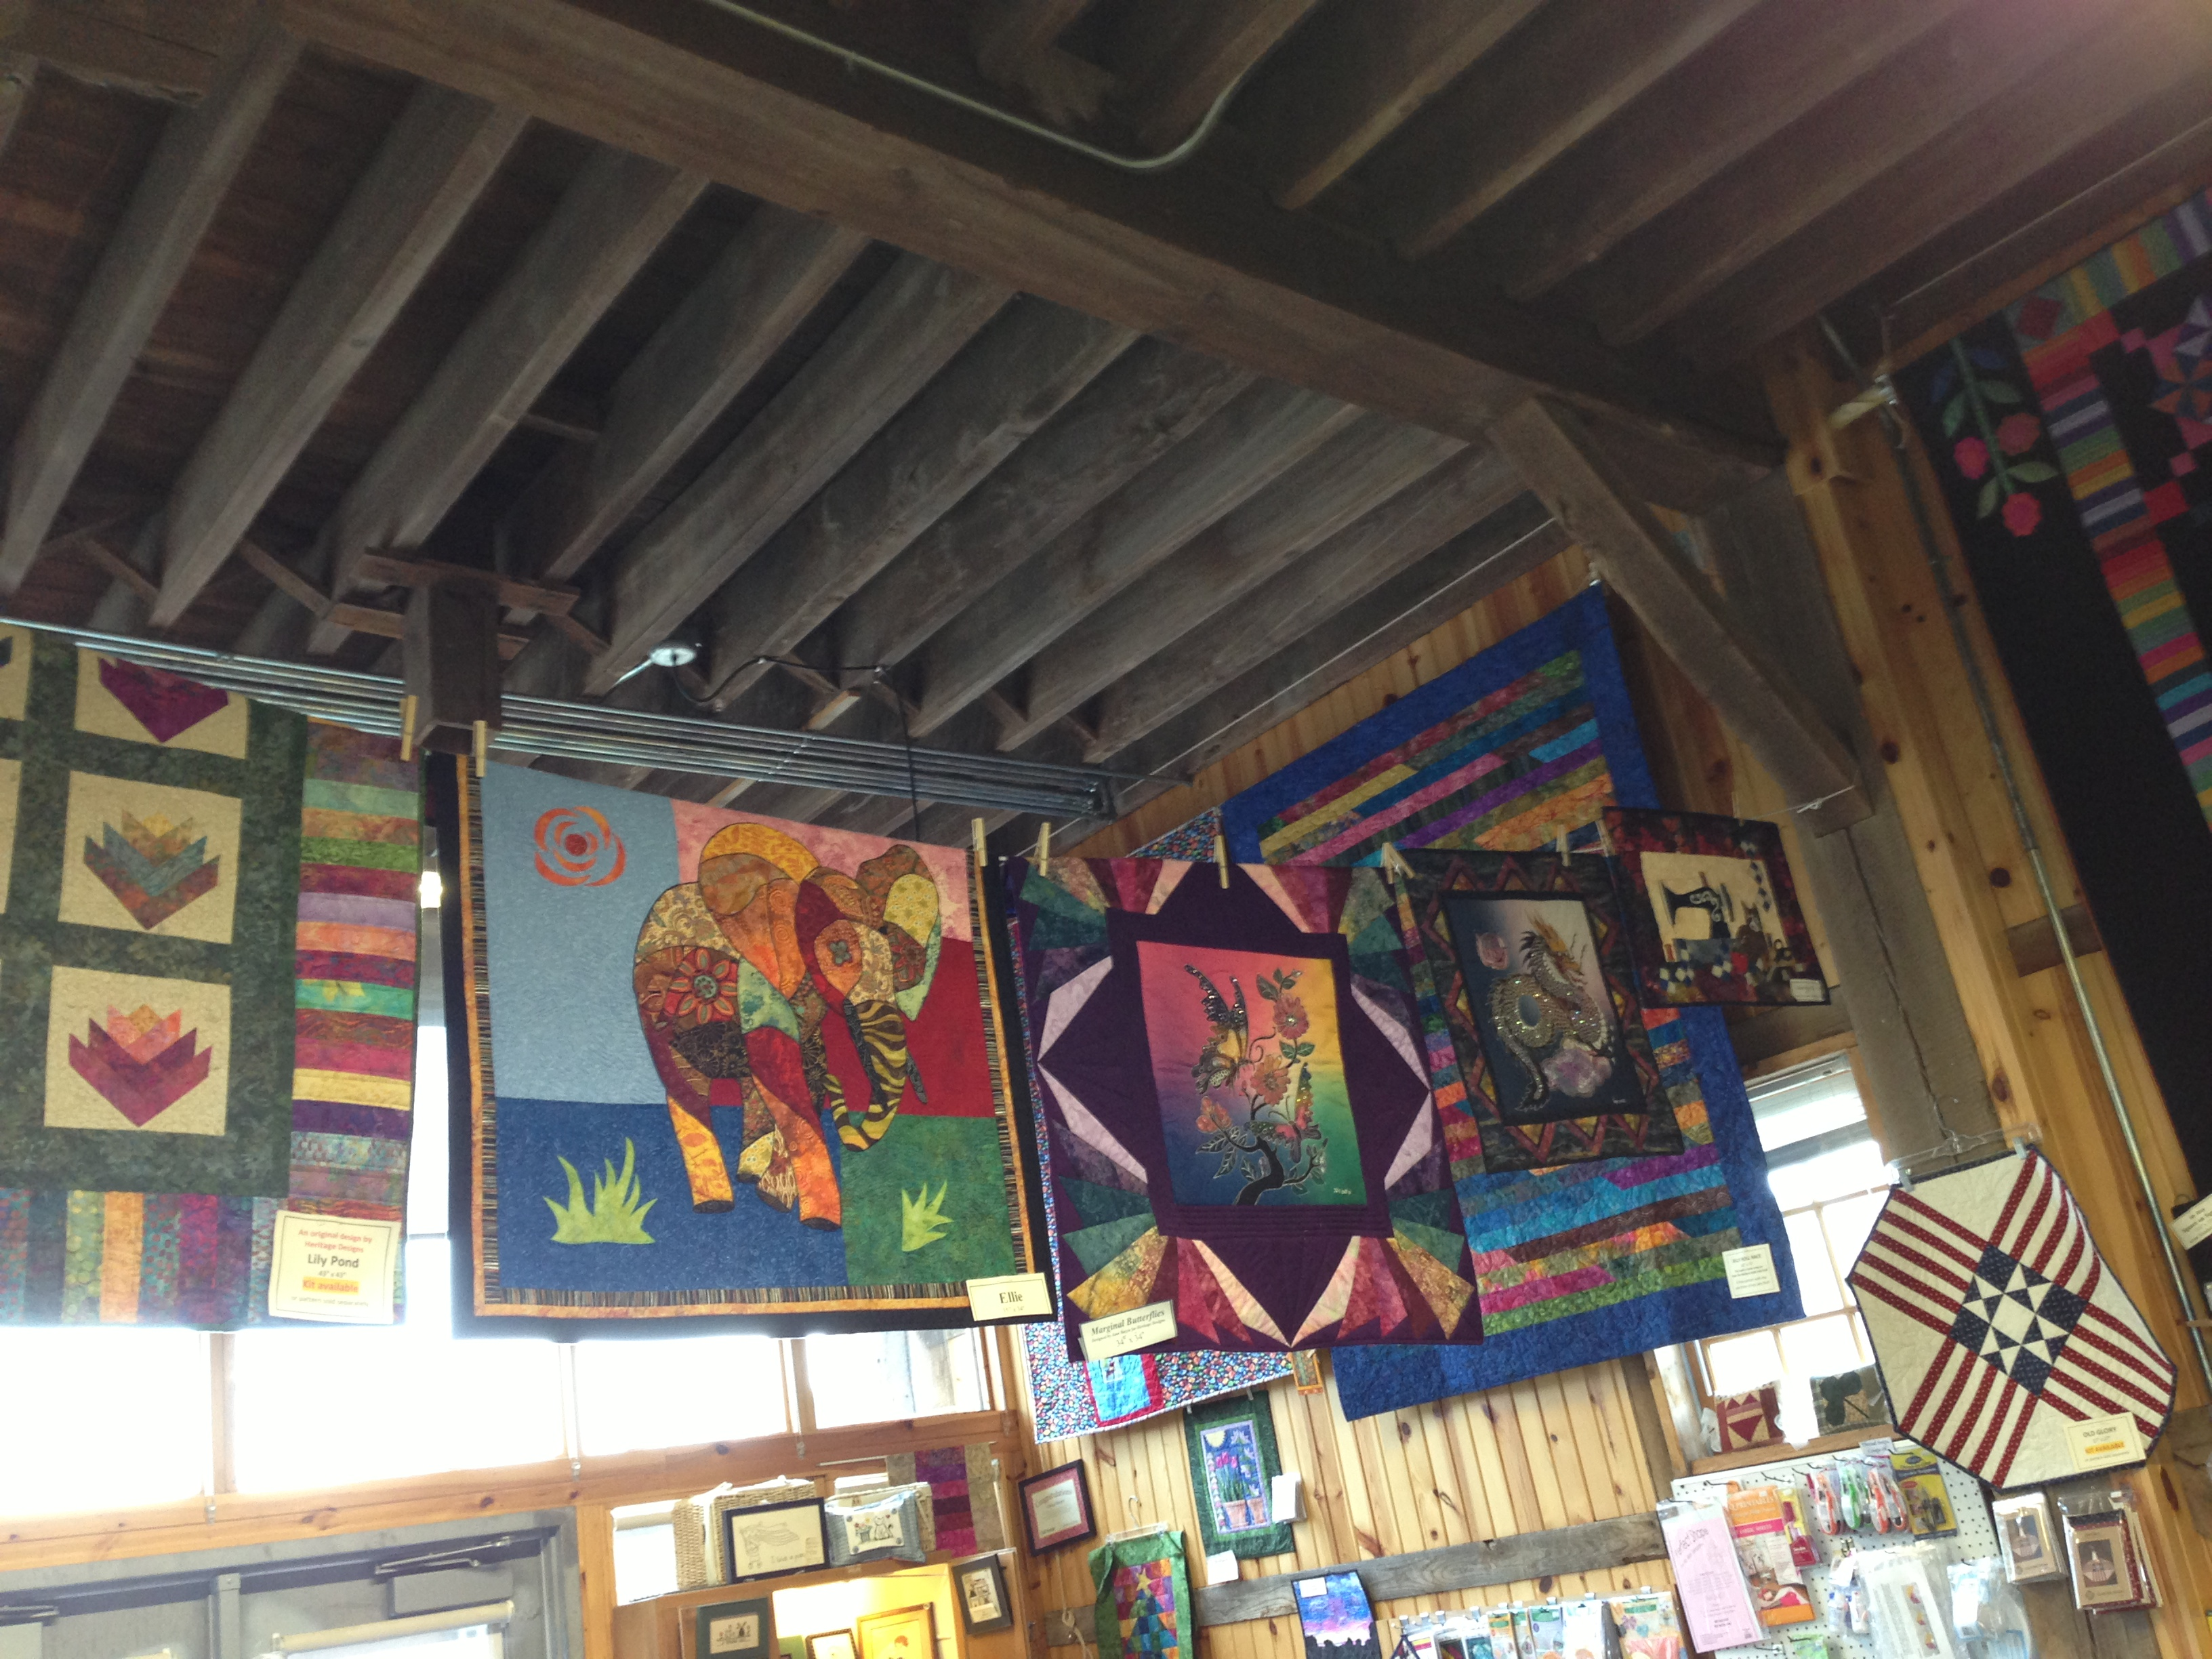 Multi-colored hanging on the walls and from the wooden rafters.